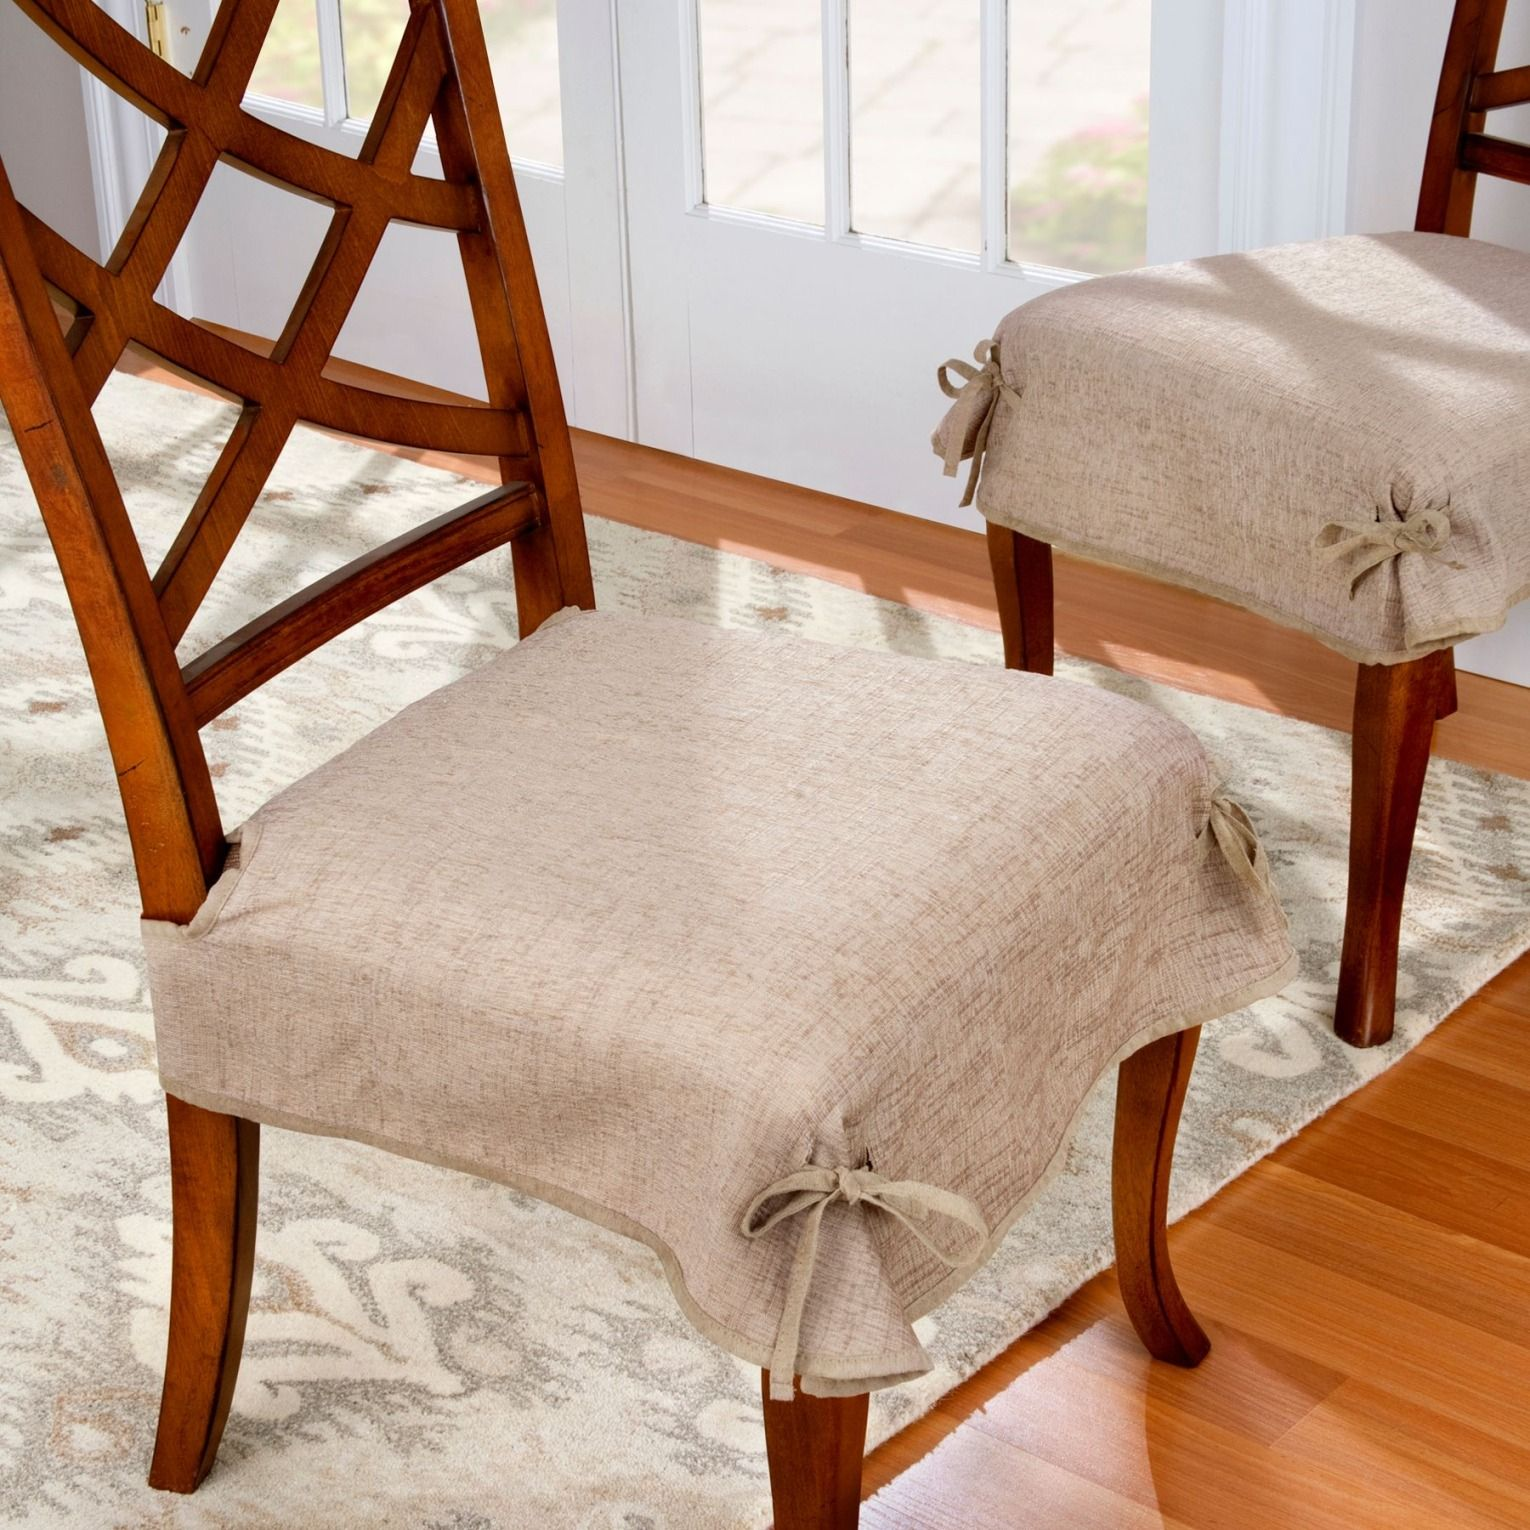 Instantly update your living room chairs with these sleek